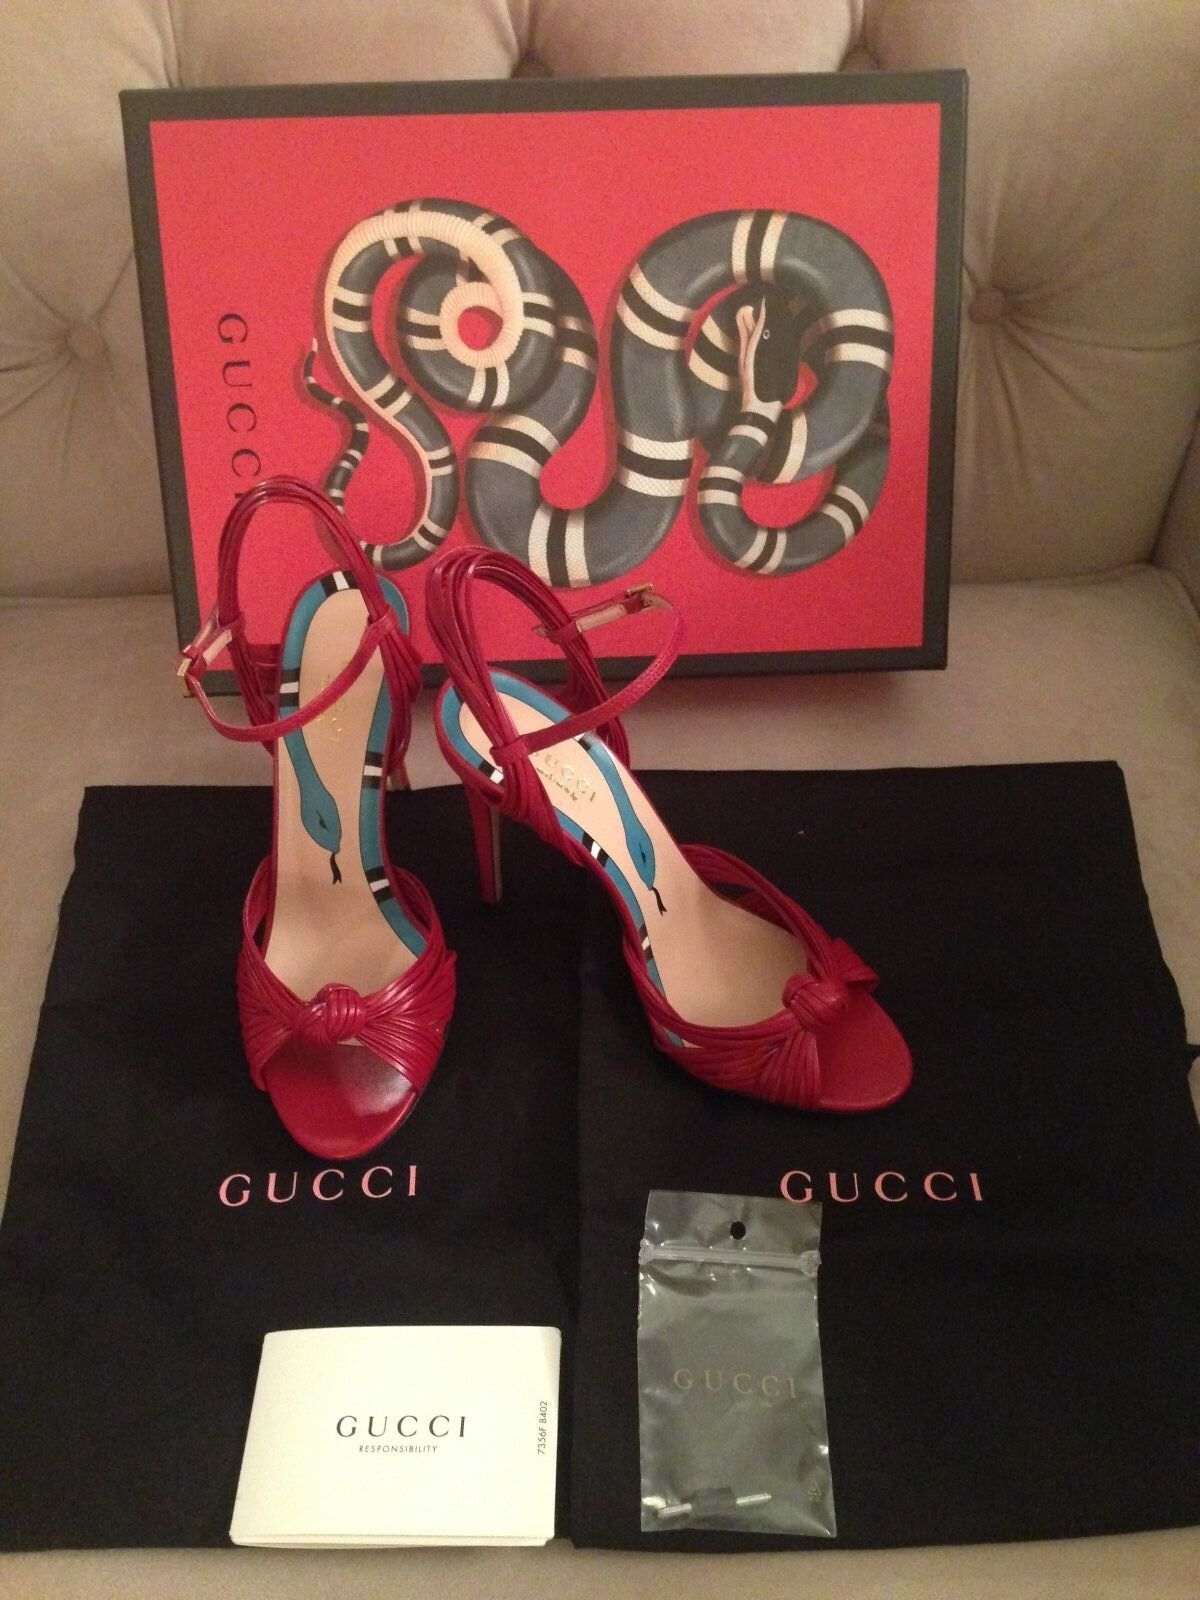 "GUCCI WOMEN ALLIE 4.5"" KNOT HIGH HEEL SANDALS - HIBISCUS DARK RED, SZ 36.5 - NIB"